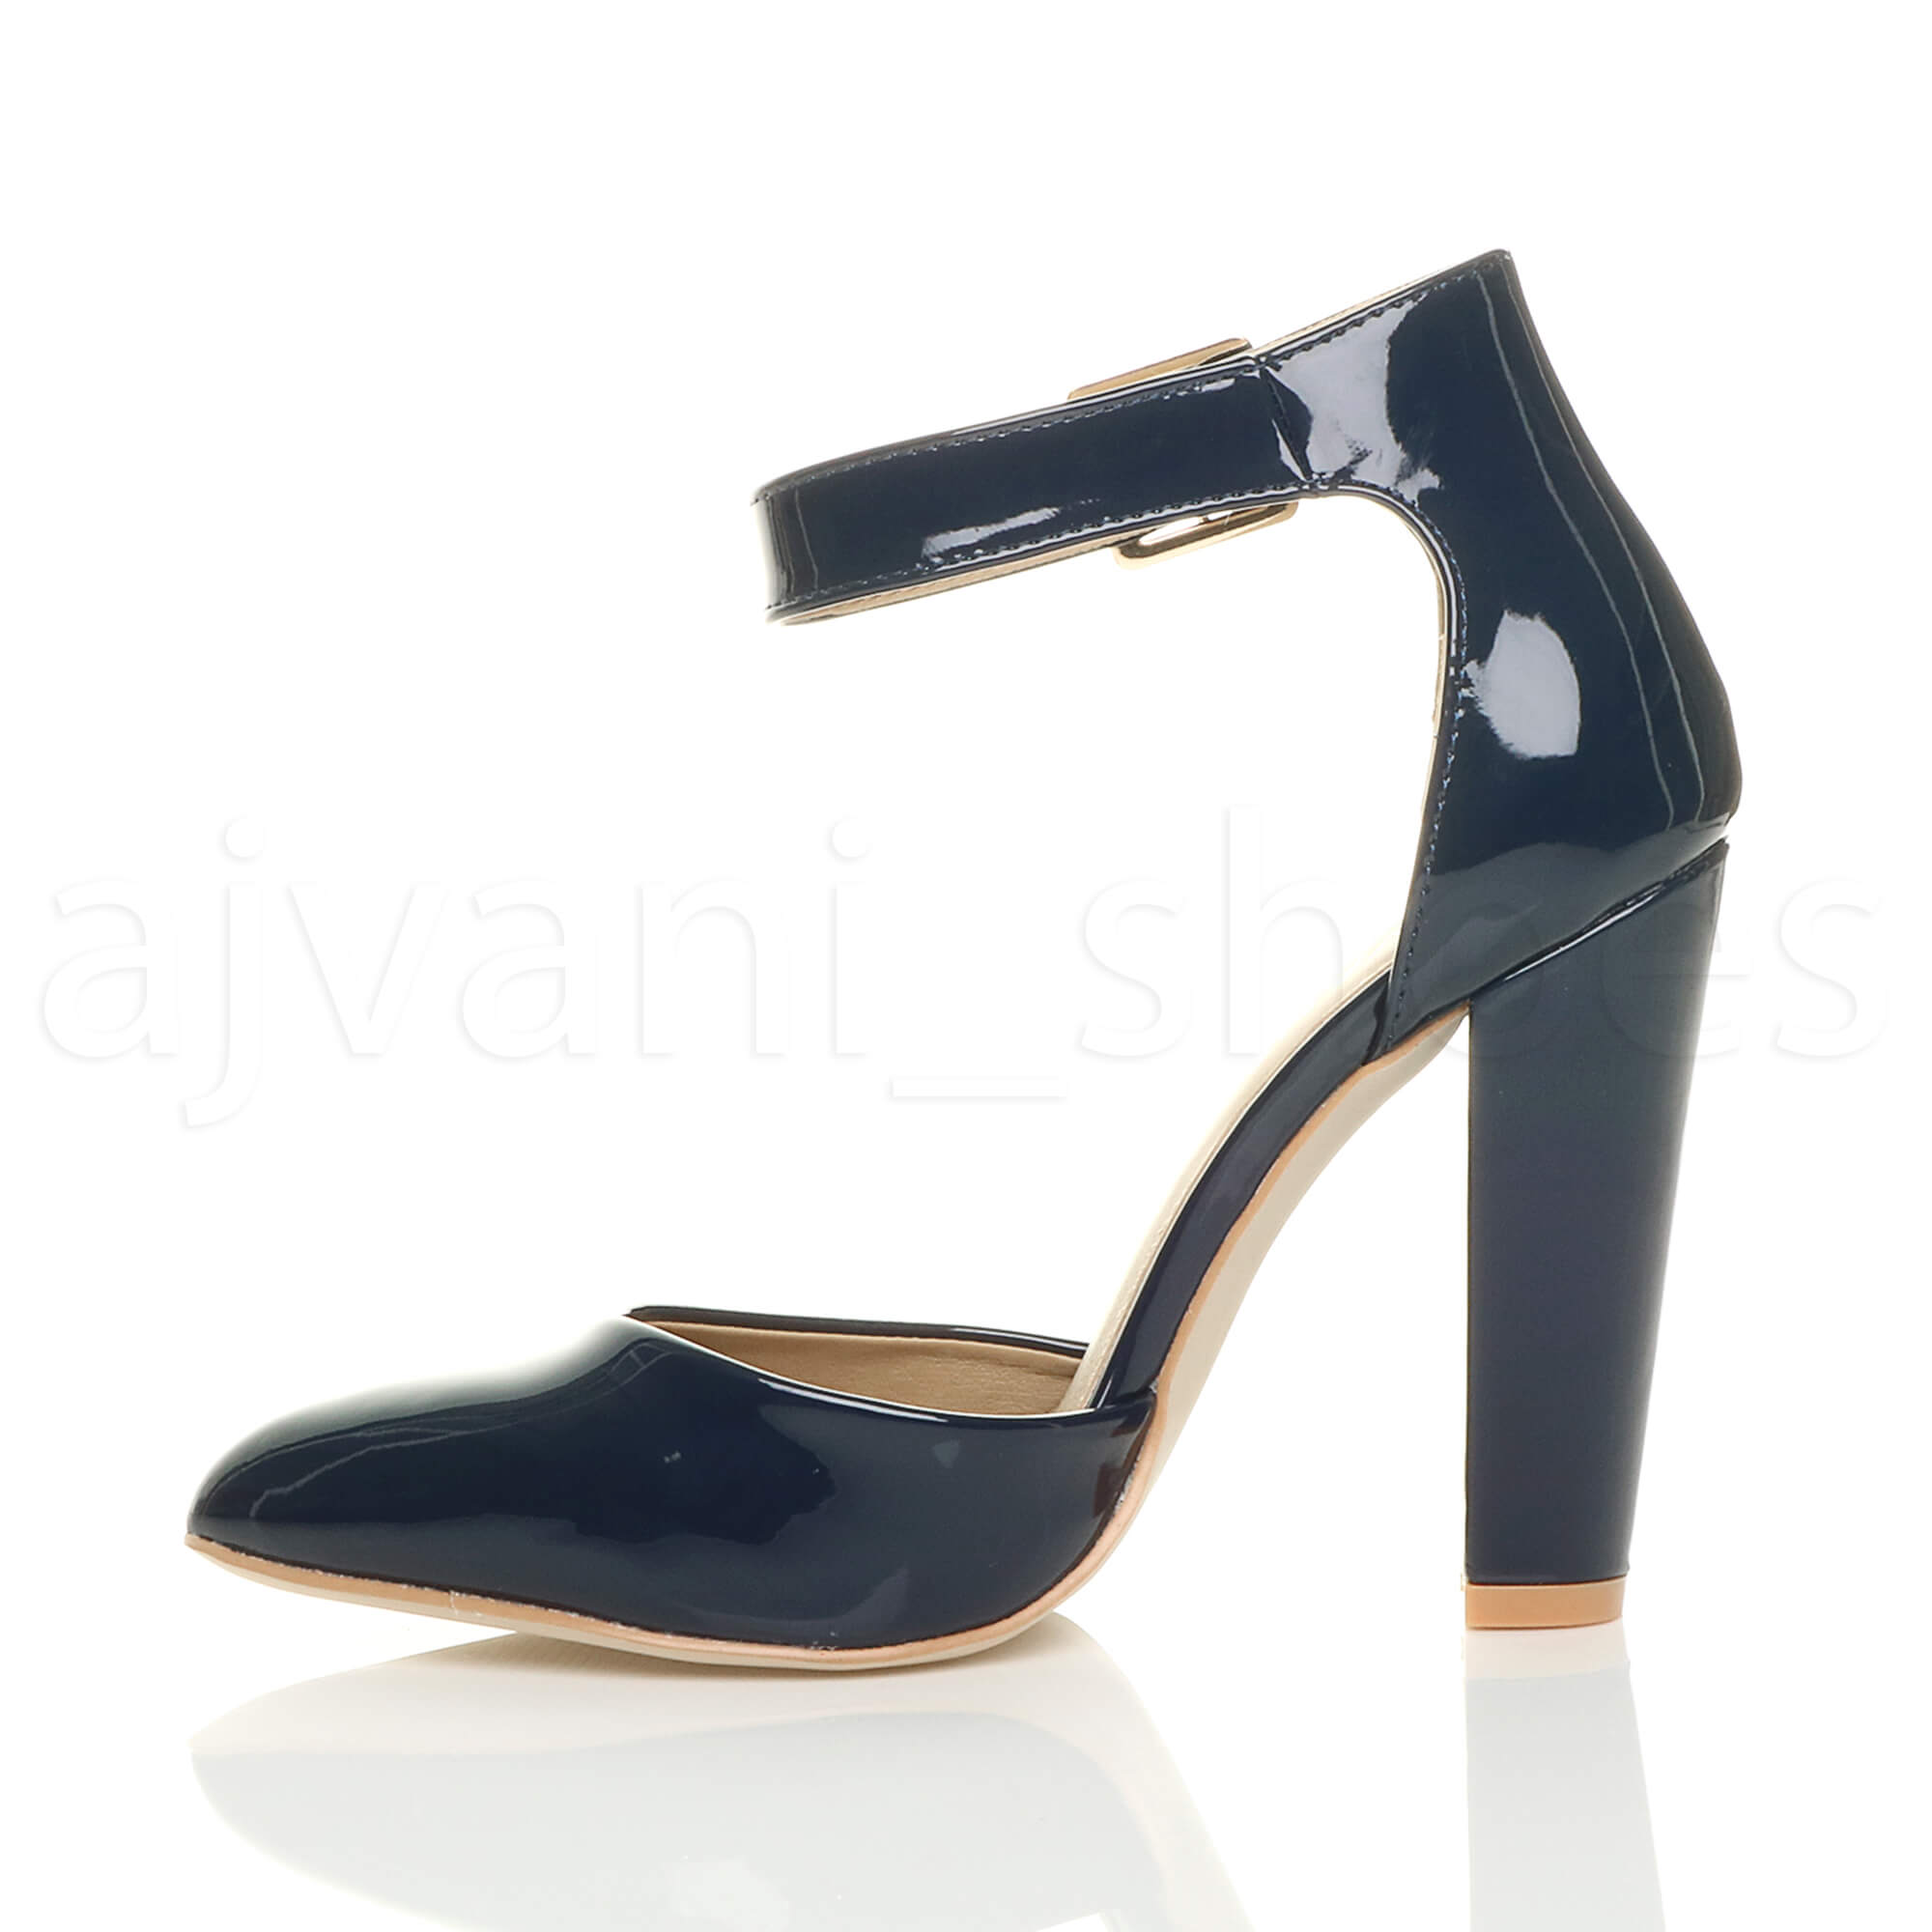 WOMENS-LADIES-HIGH-BLOCK-HEEL-ANKLE-STRAP-BUCKLE-POINTED-COURT-SHOES-SIZE thumbnail 74